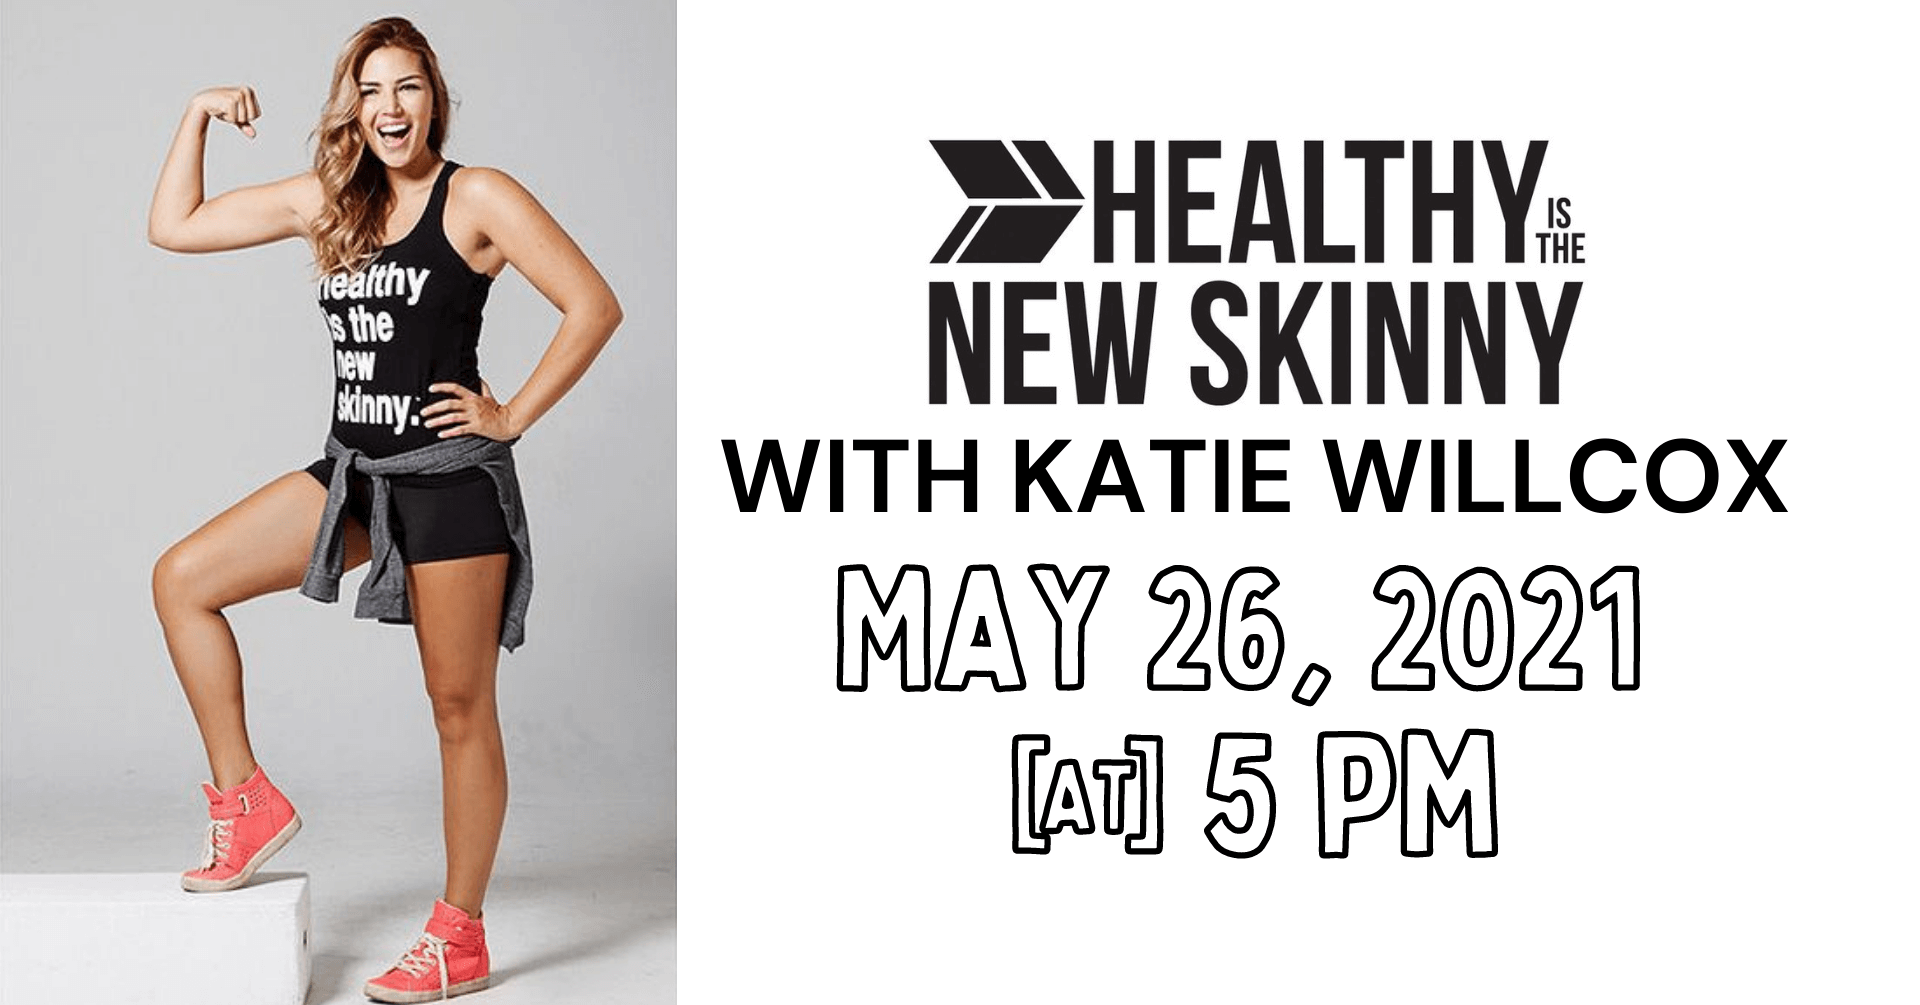 Healthy Is The New Skinny With Katie Willcox